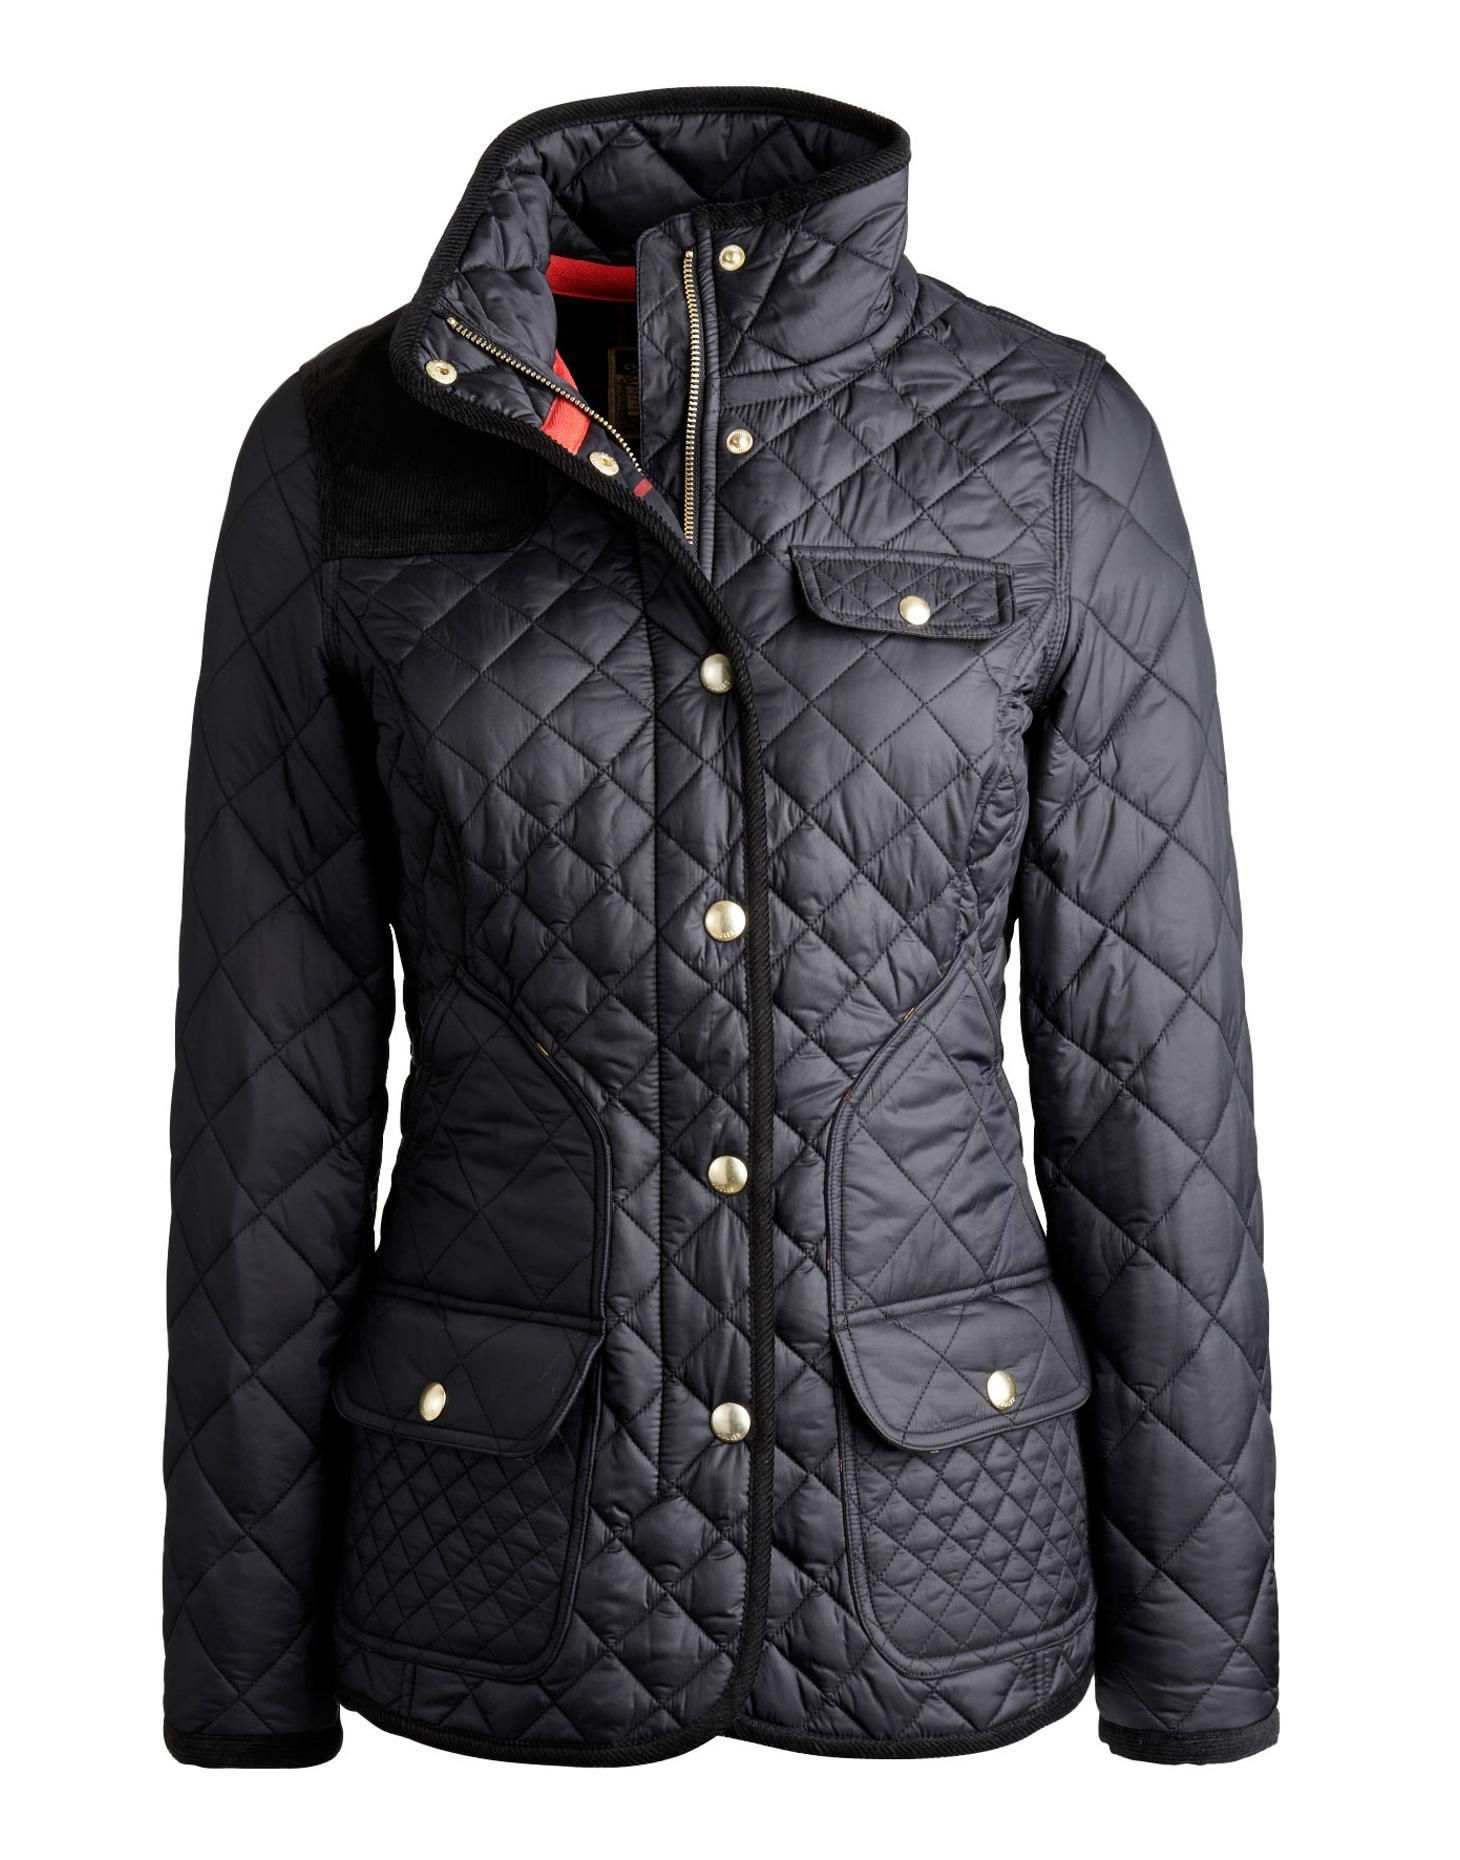 CALVERLY Womens Coat | Clothing | Pinterest | Quilted jacket and Black